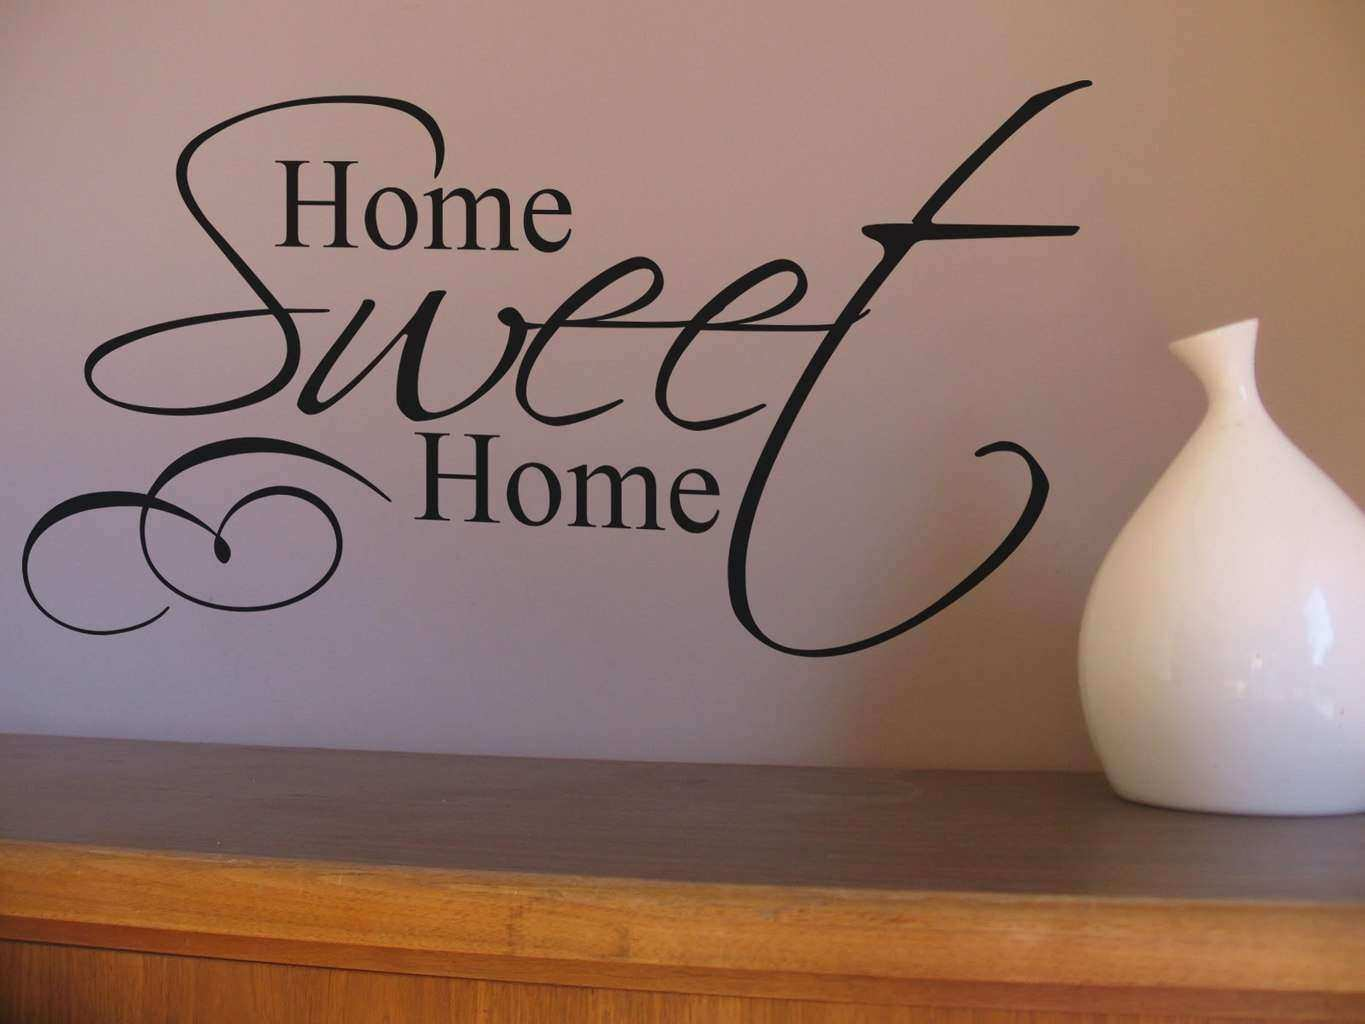 Create a homely space with this Home Sweet Home wall art decal